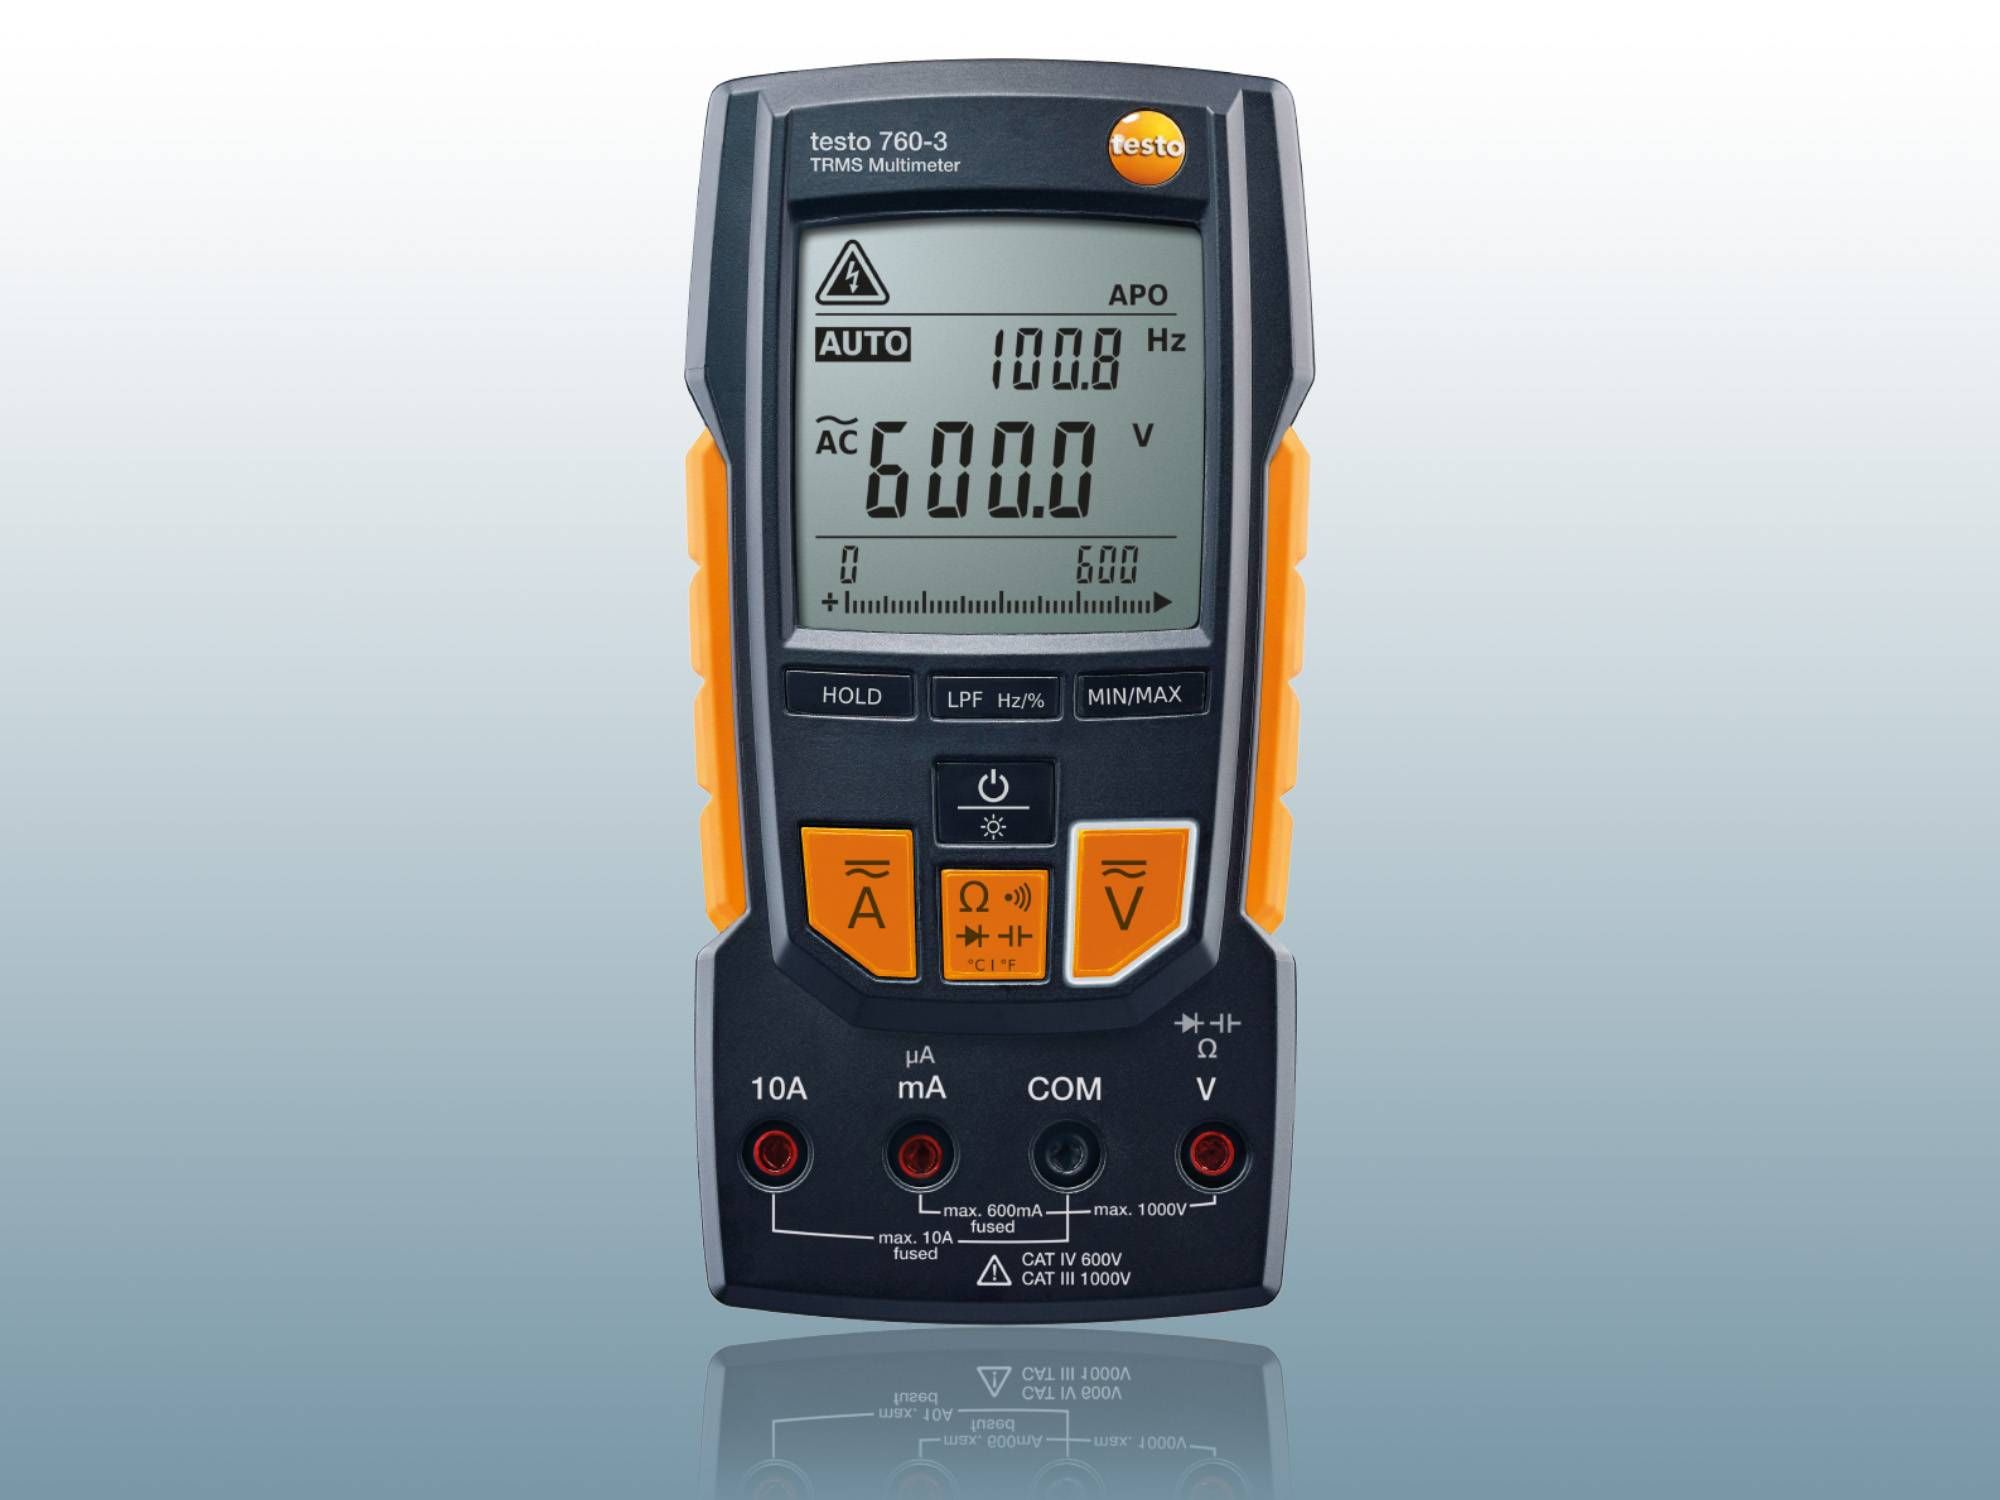 testo 760-3 - Multimètre digital